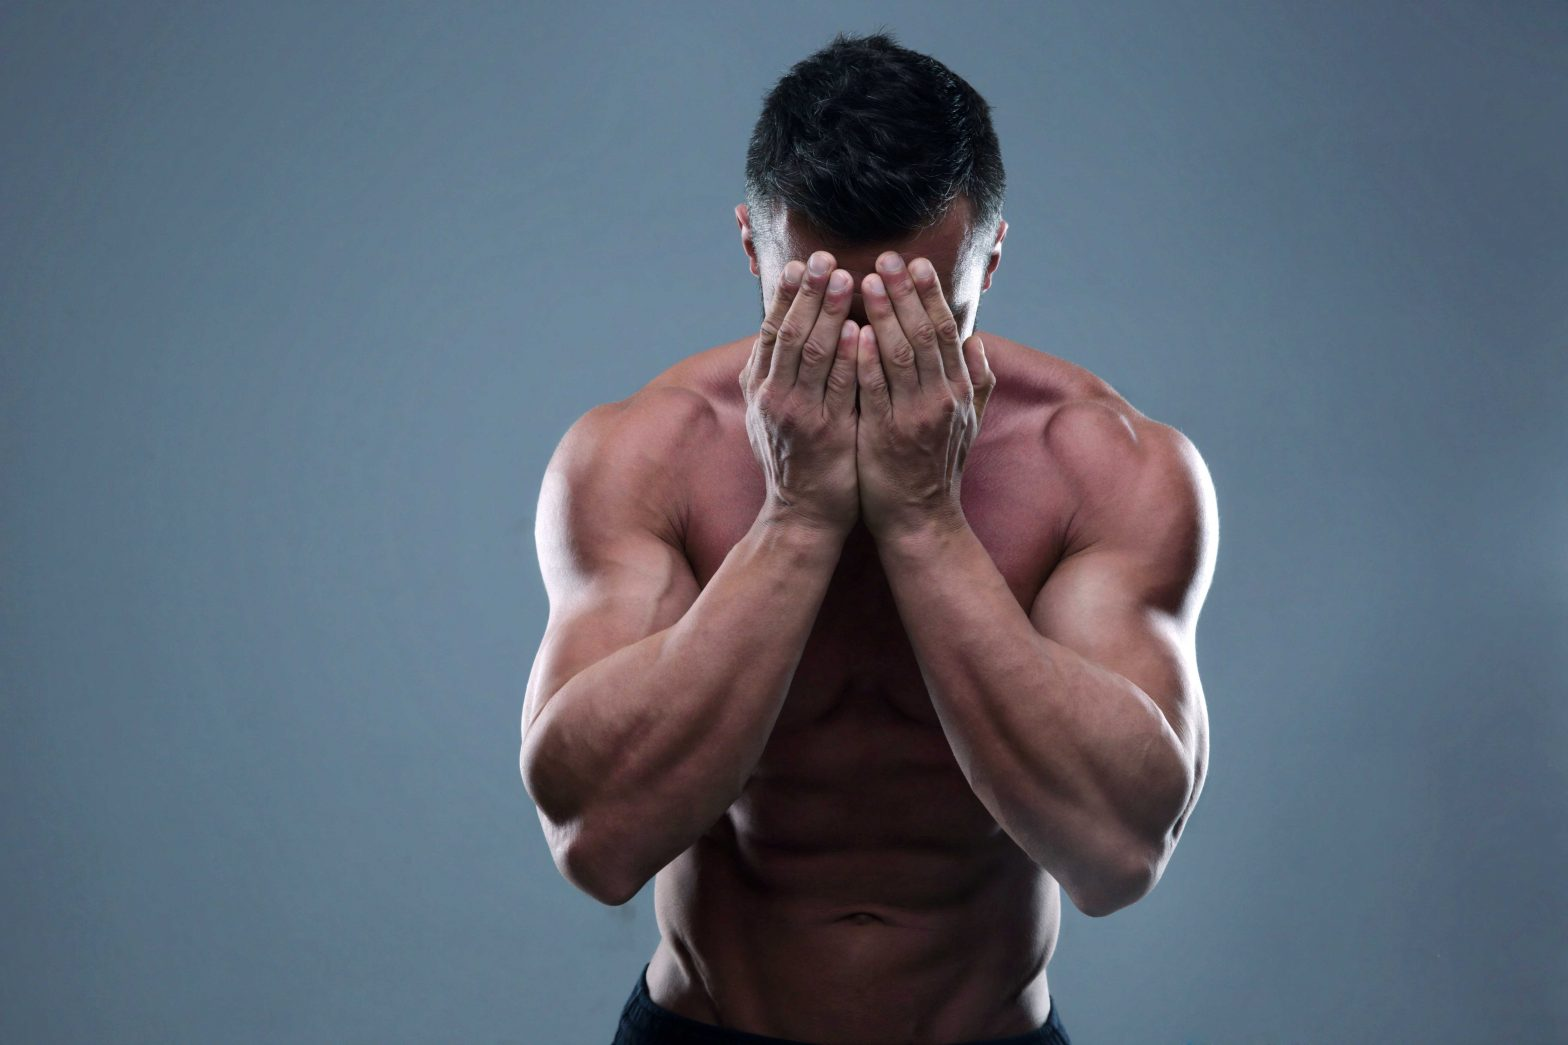 ripped guy burying face in hands